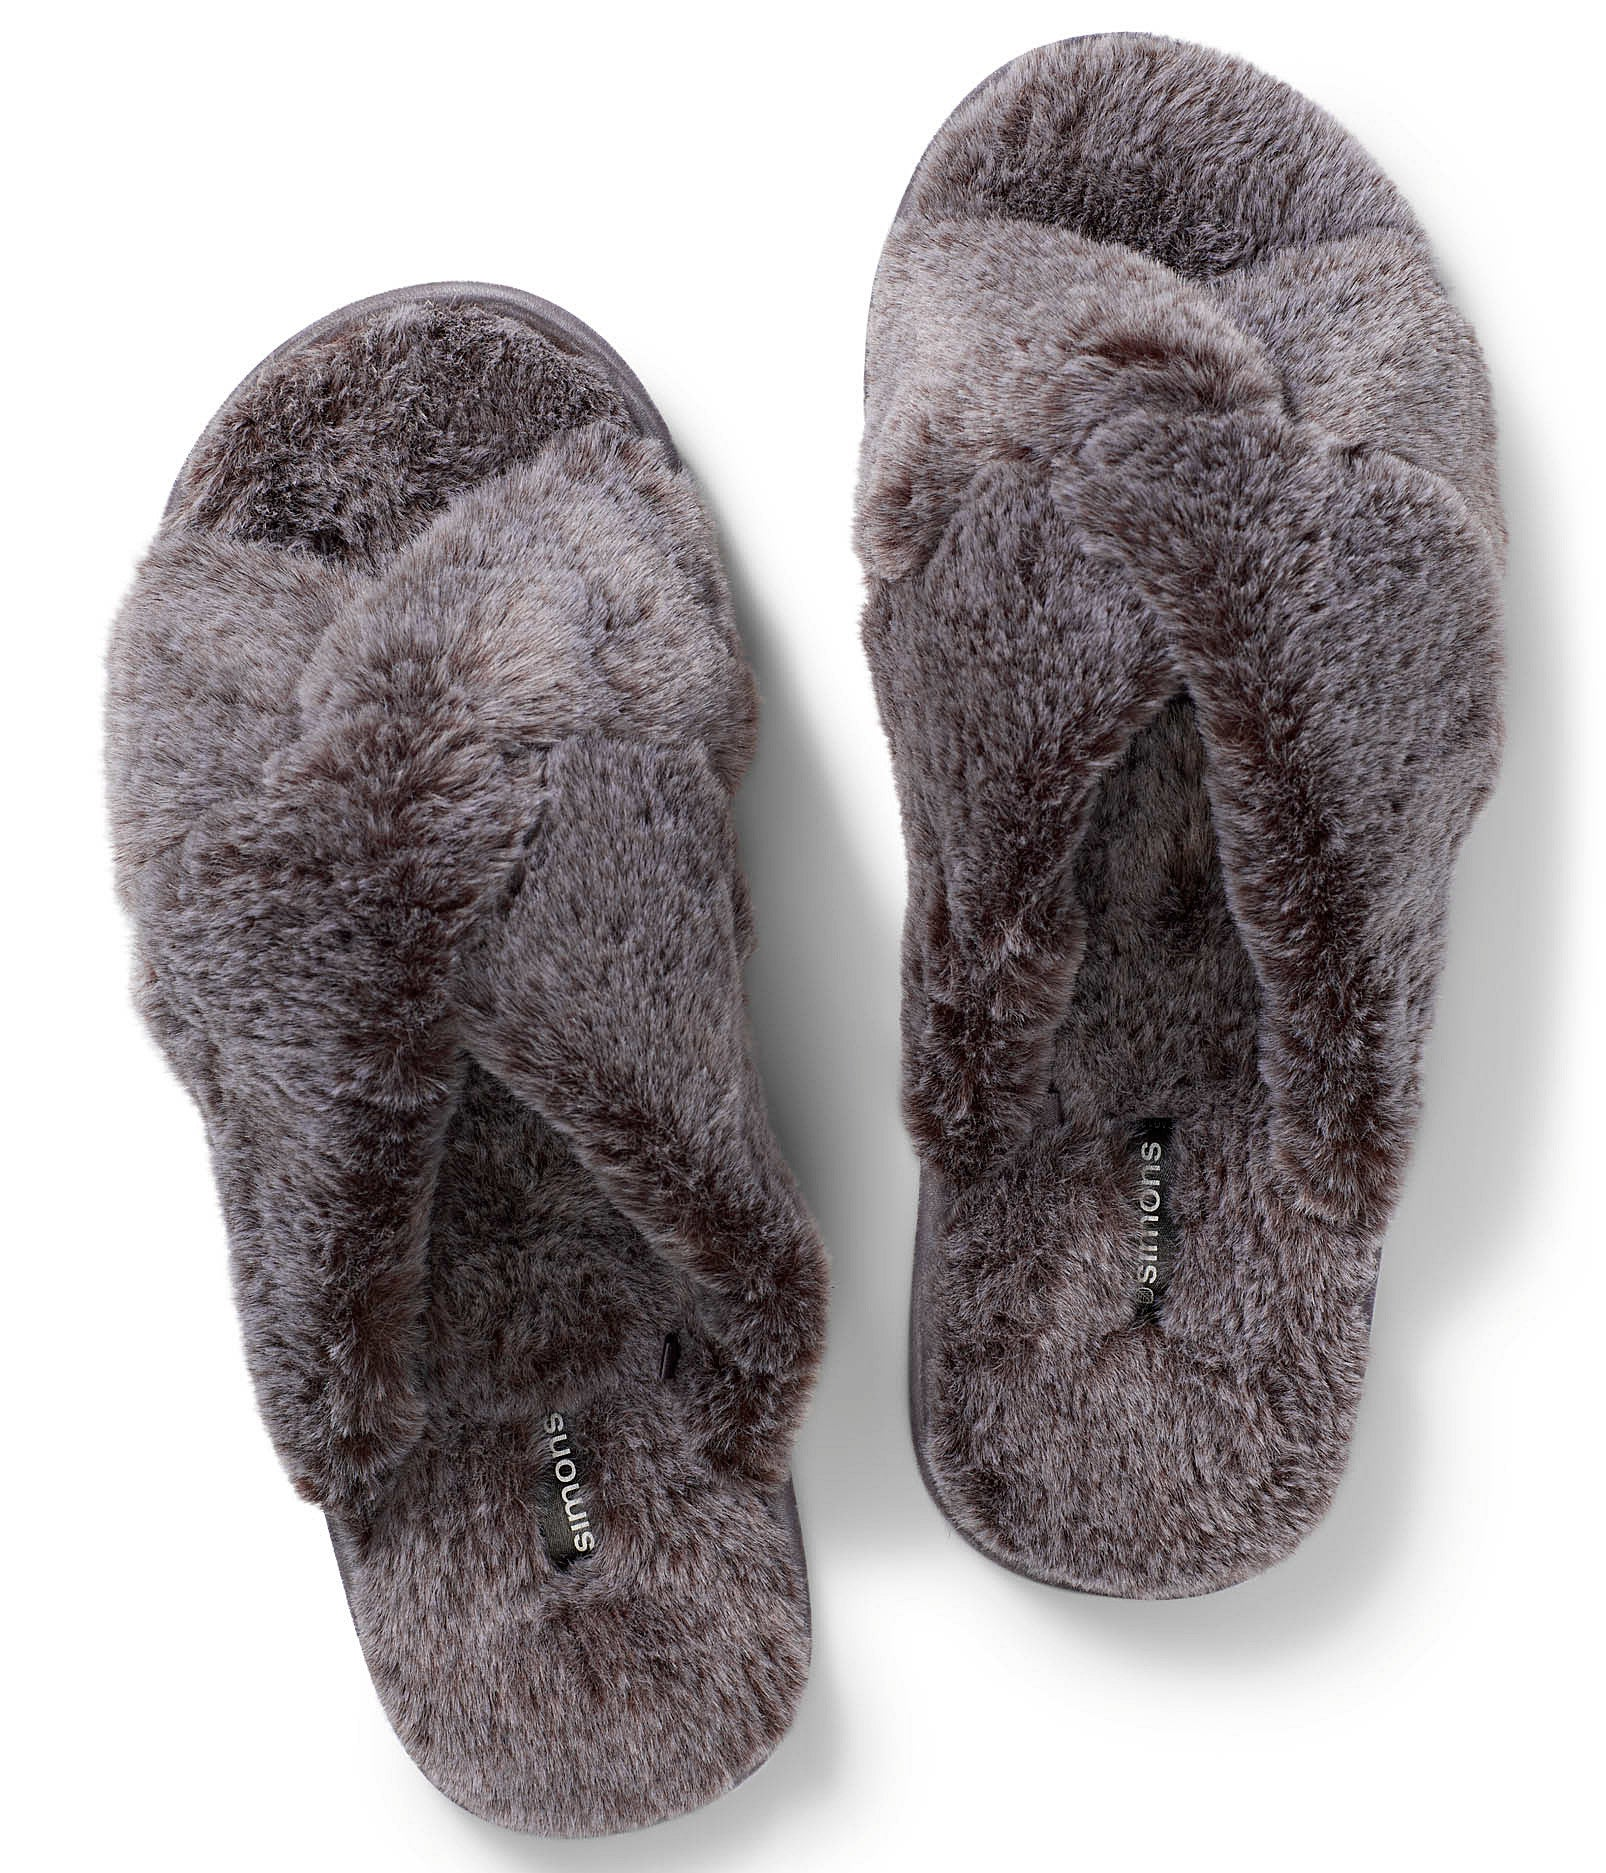 A pair of fluffy faux fur slippers